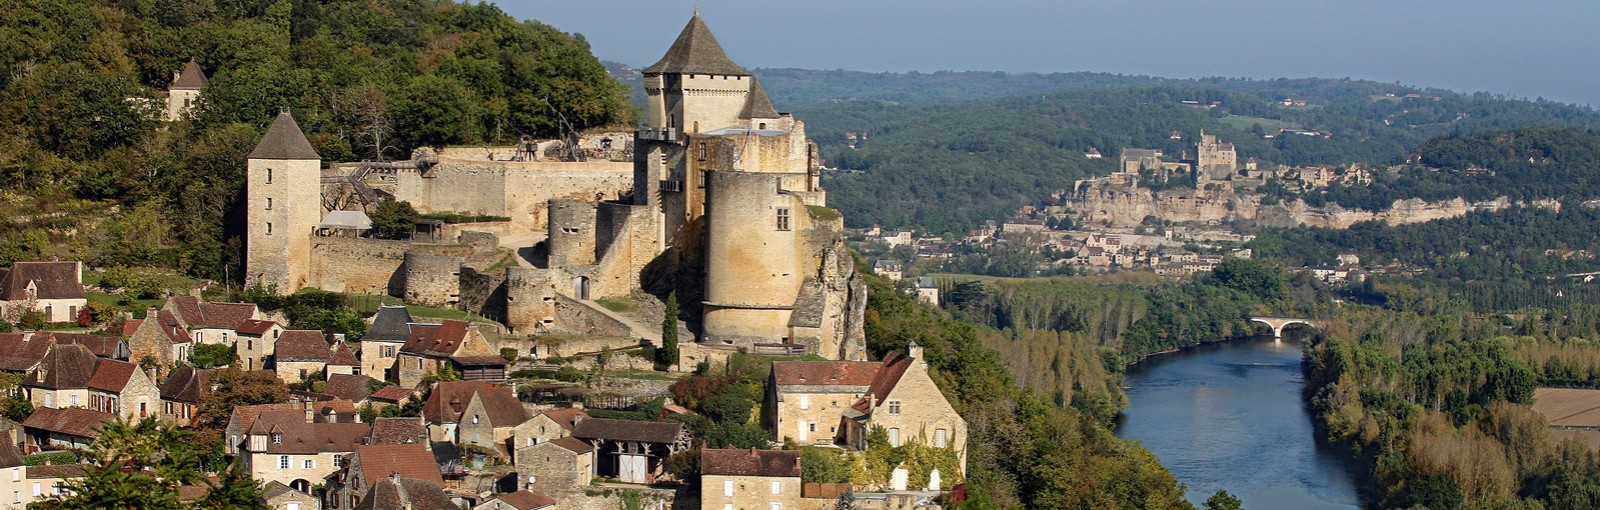 Tours Private day tours from Sarlat - Dordogne & Aquitaine - Regional tours